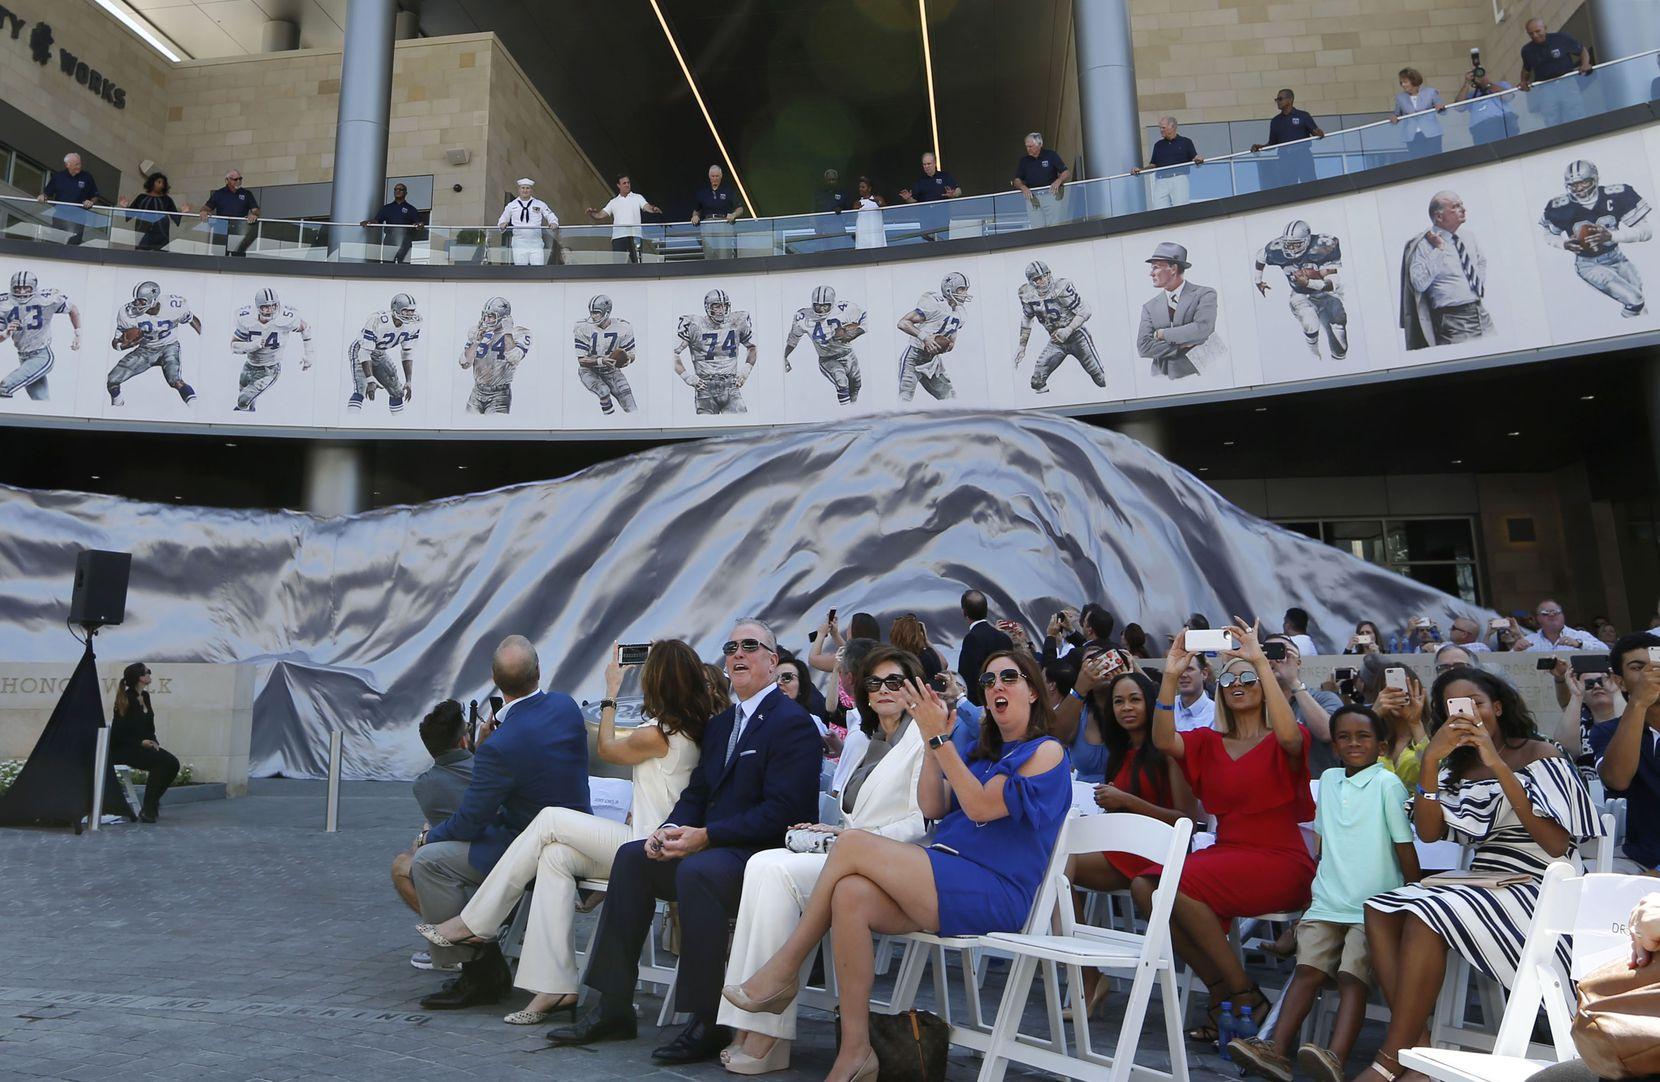 Dallas Cowboys Ring of Honor members unveil one side of the ring during the Ring of Honor Walk unveiling ceremony at The Star in Frisco on Aug. 21.